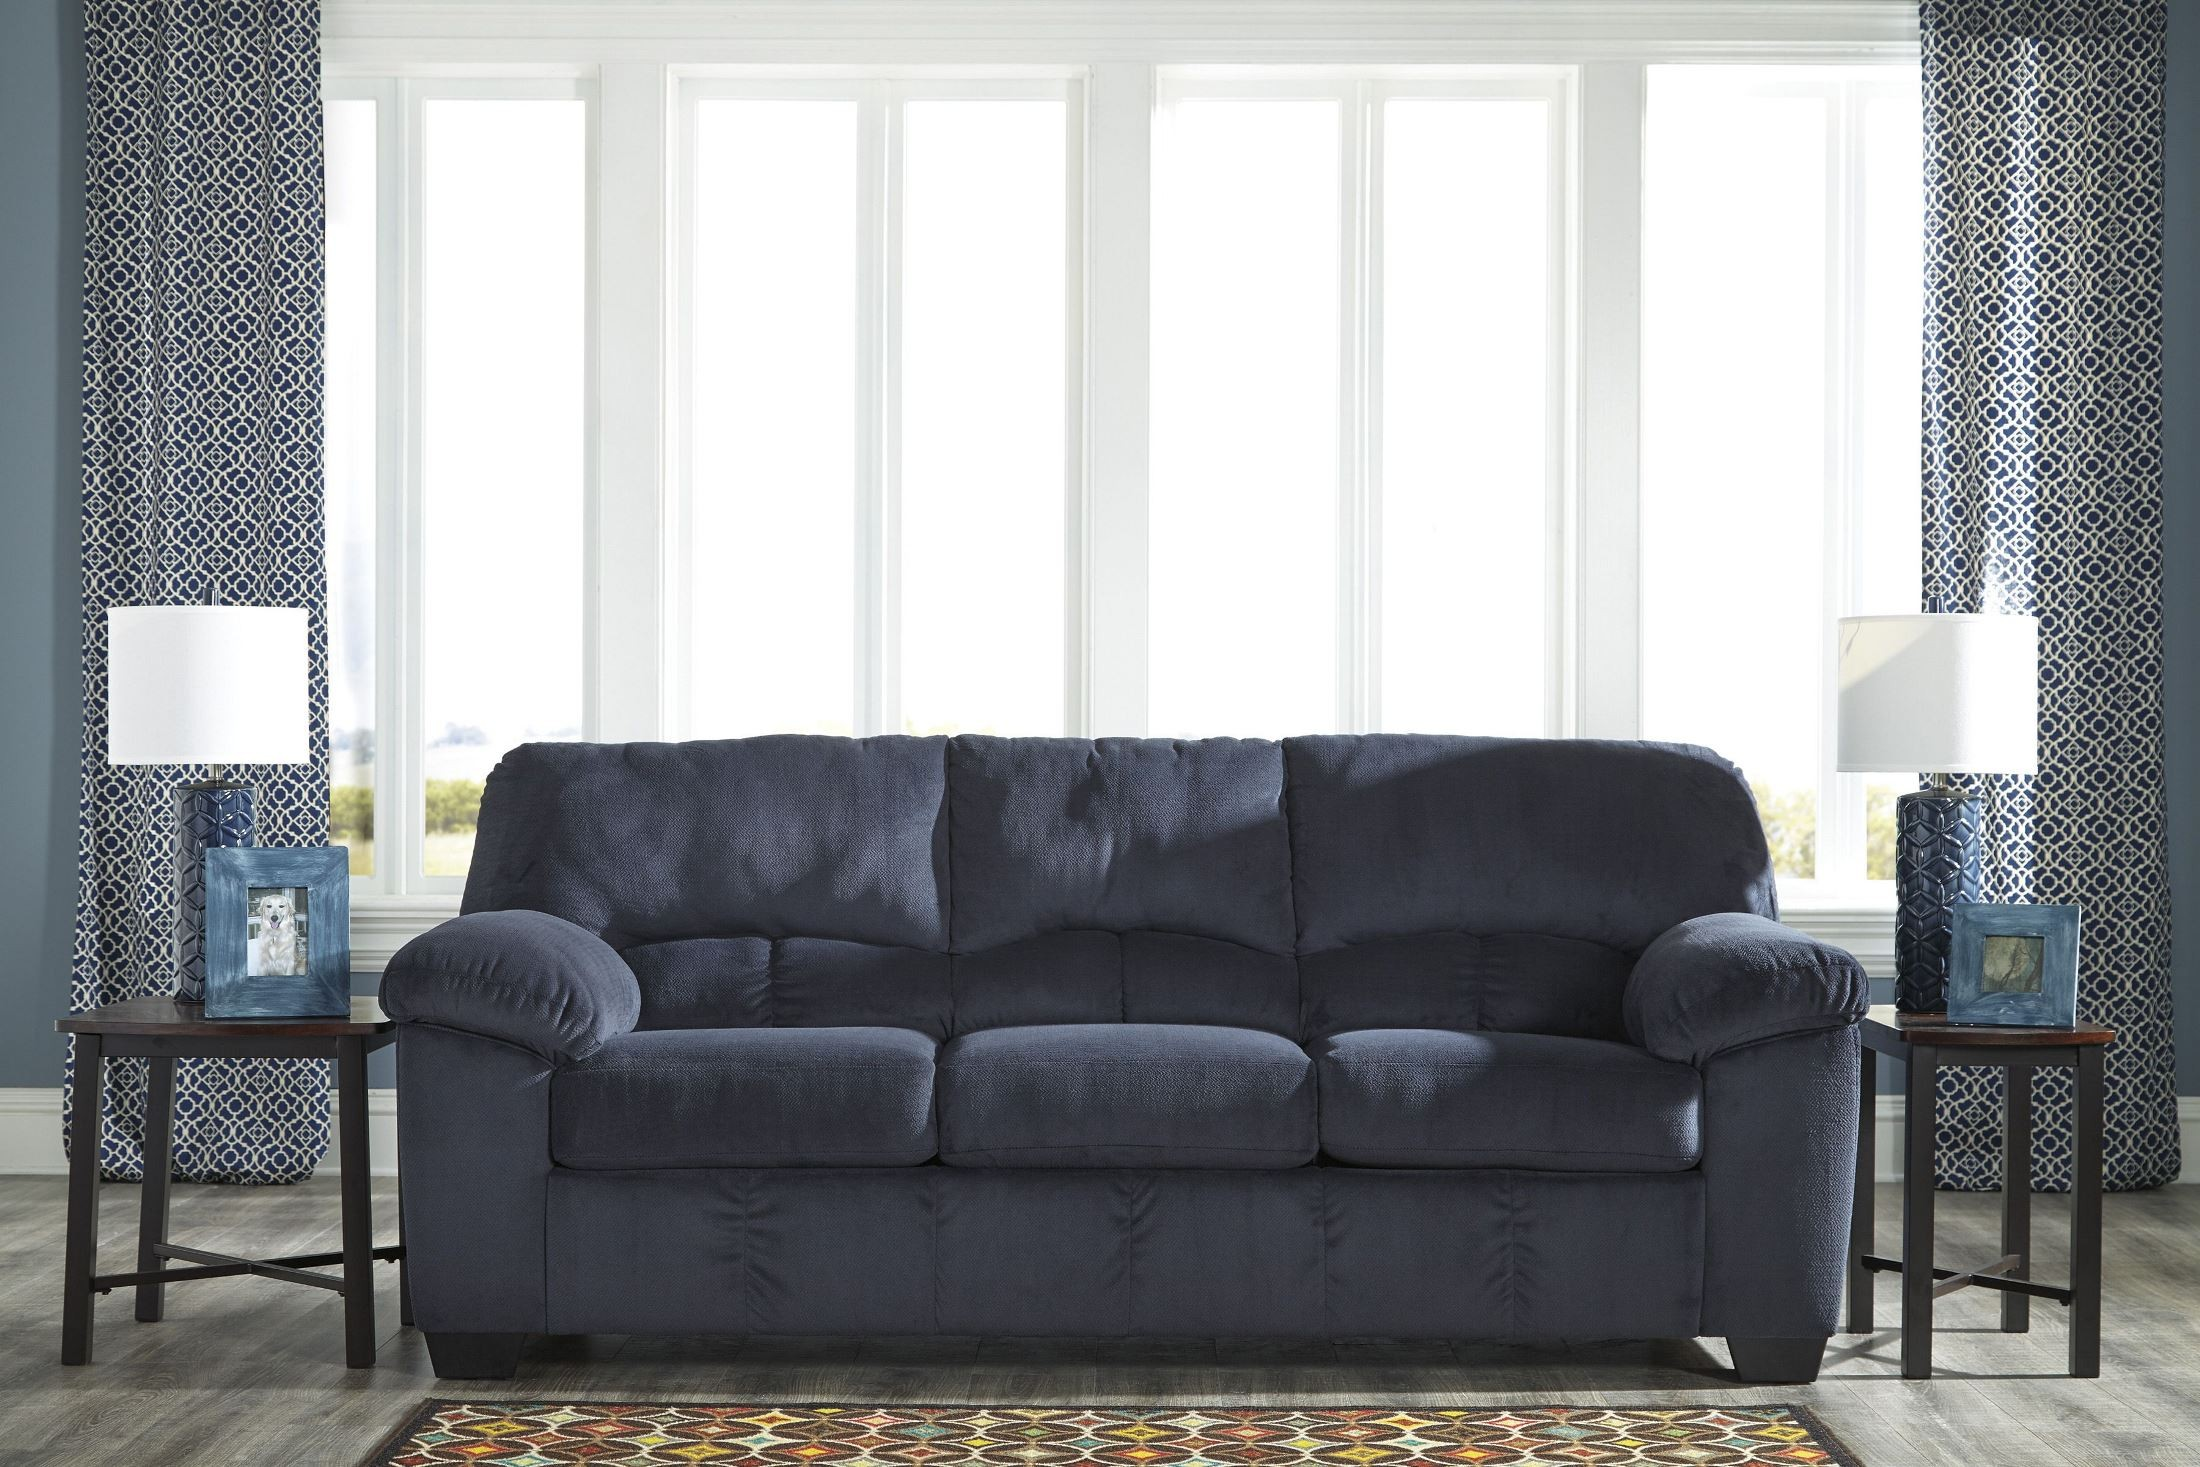 Dailey Midnight Sofa From Ashley 9540238 Coleman Furniture